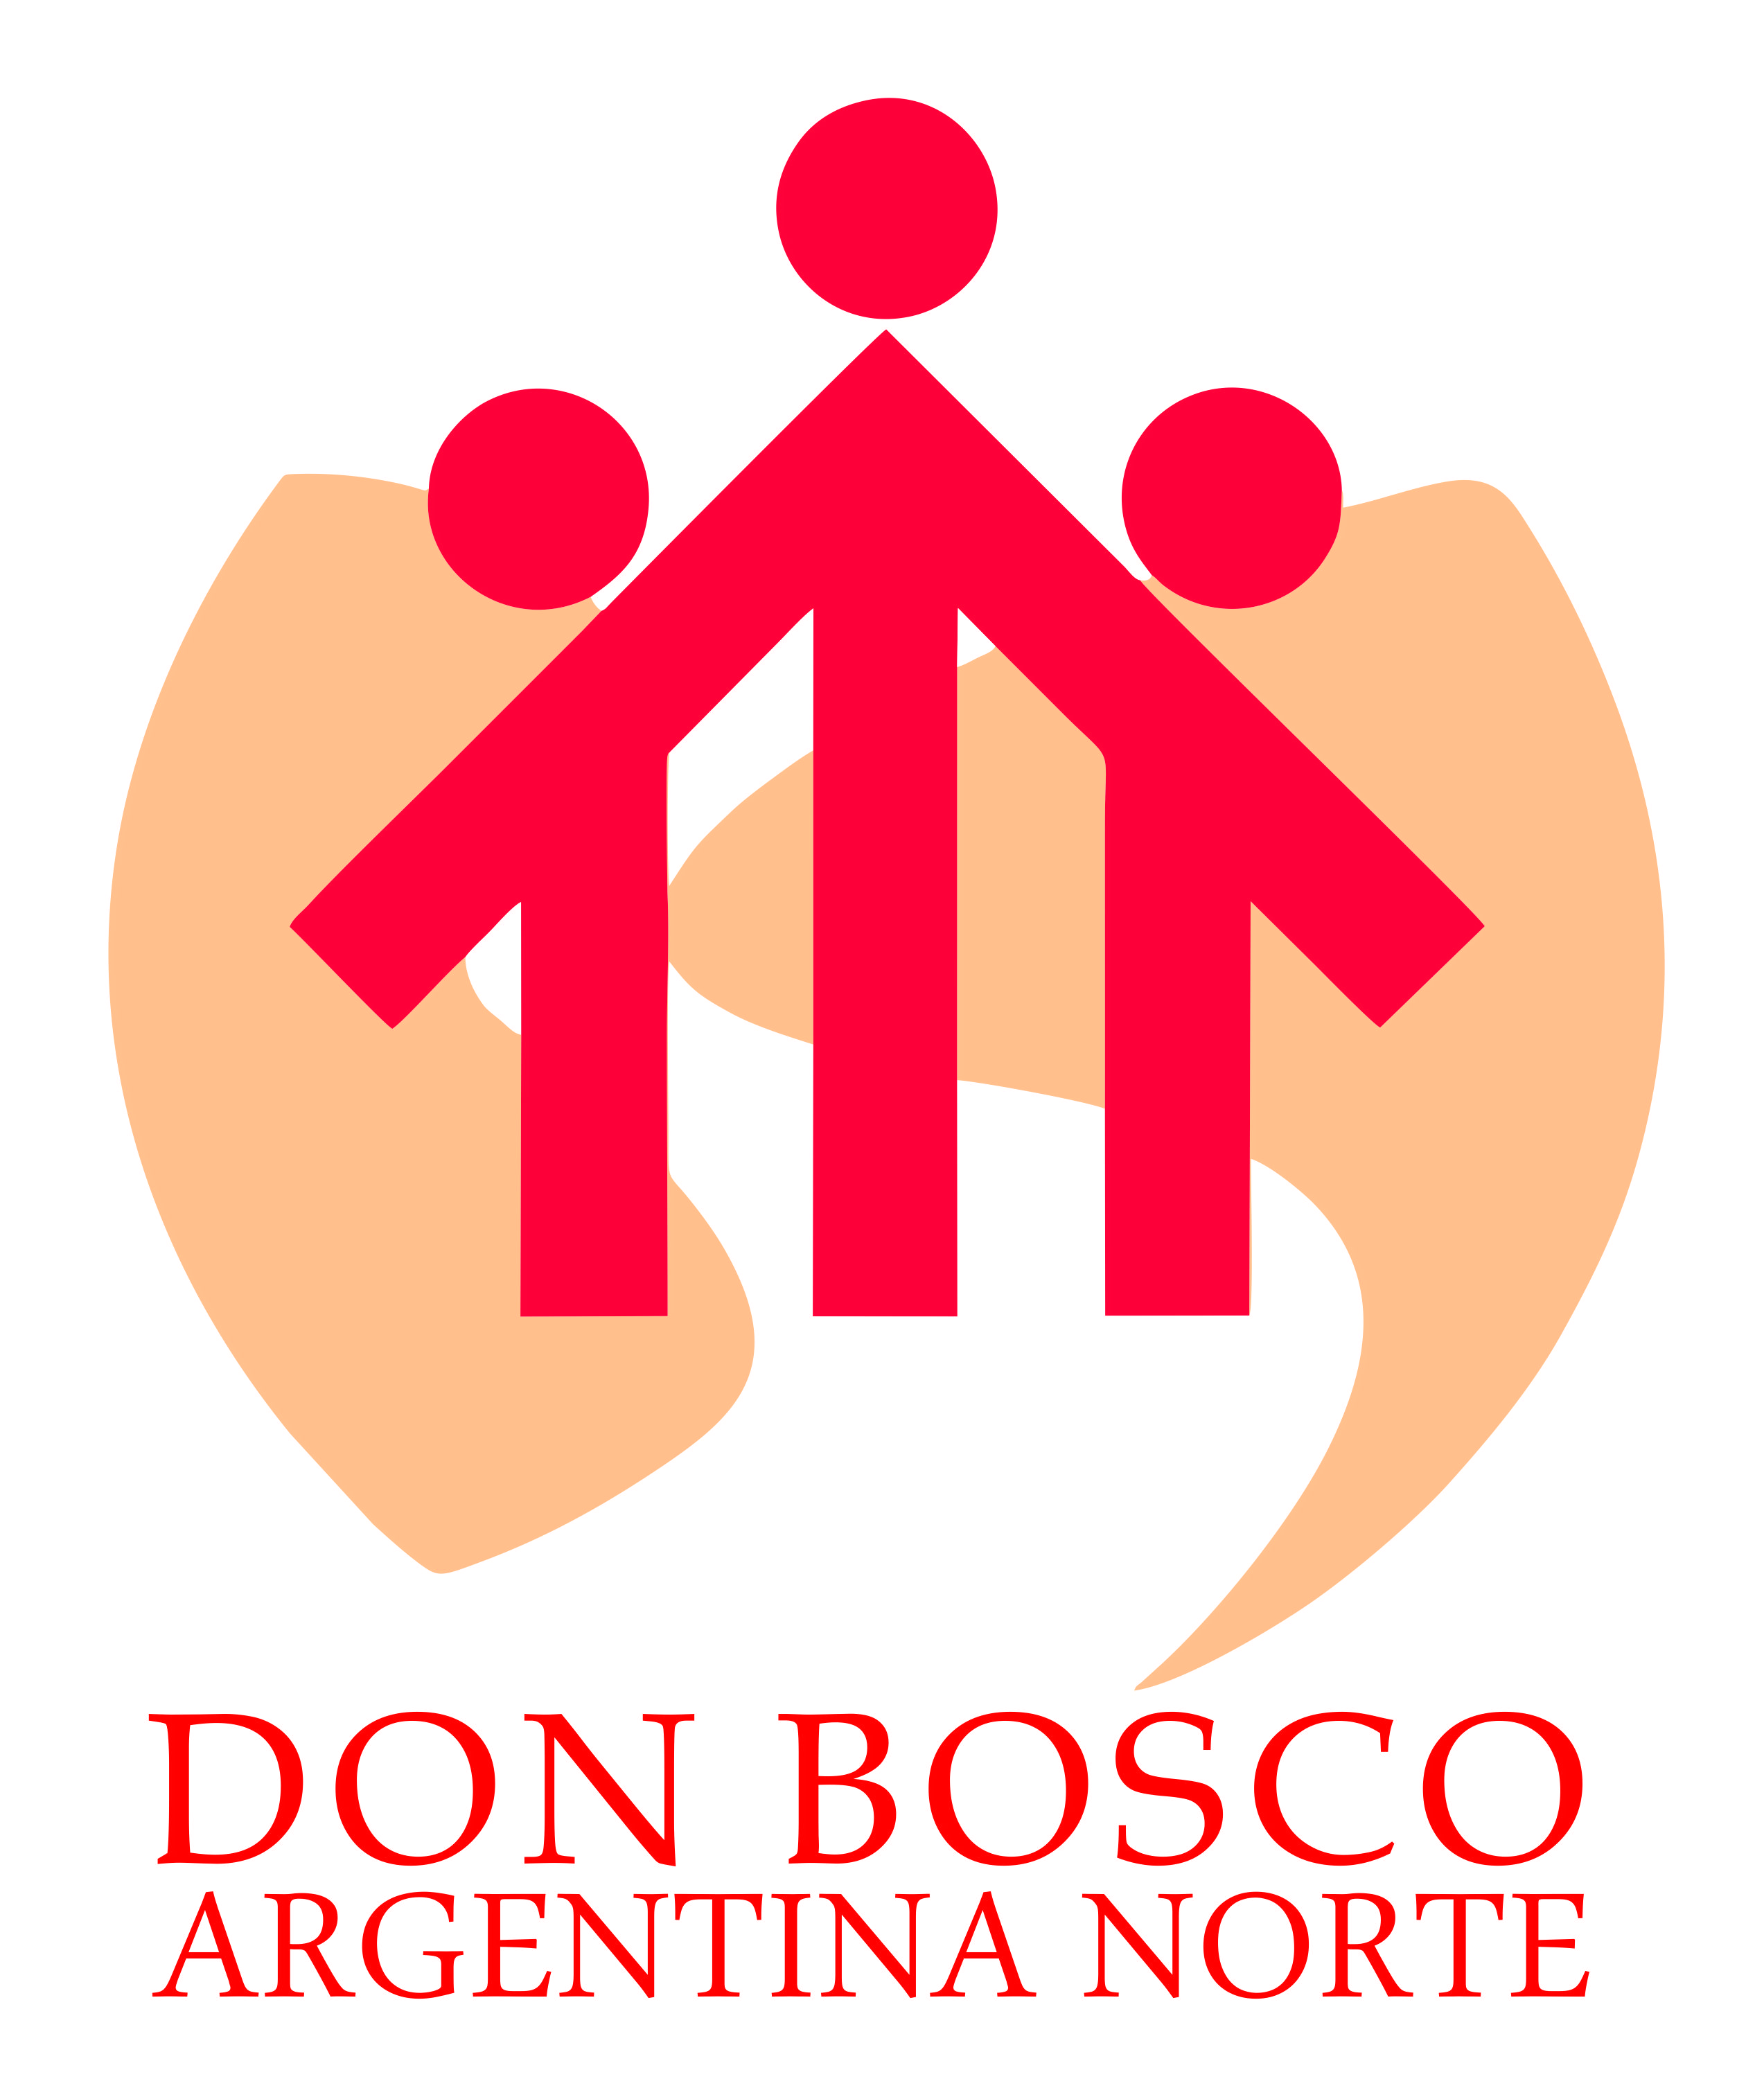 Don Bosco Argentina Norte